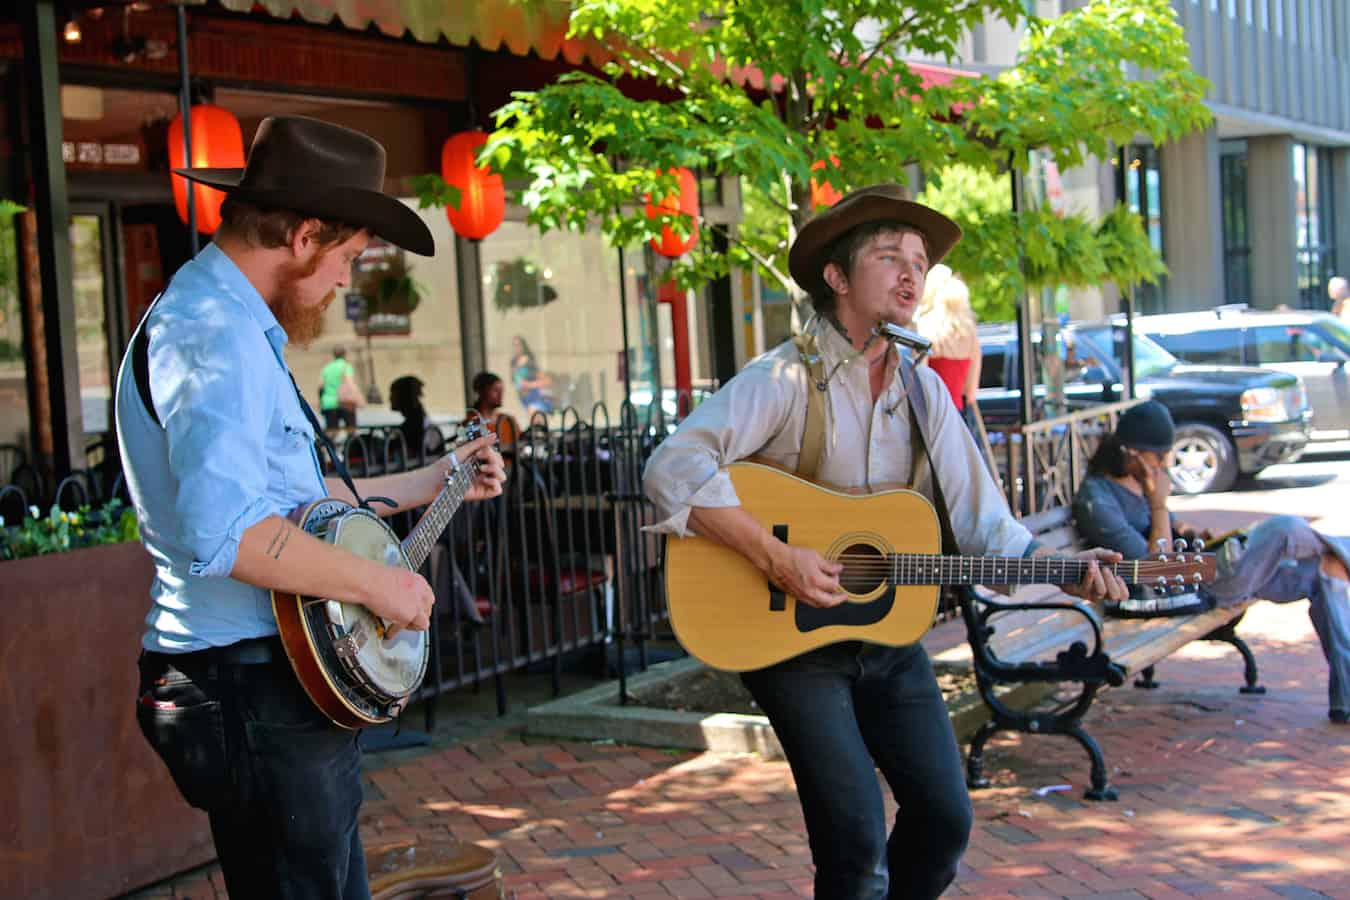 Busking Musicians in Downtown Asheville, North Carolina